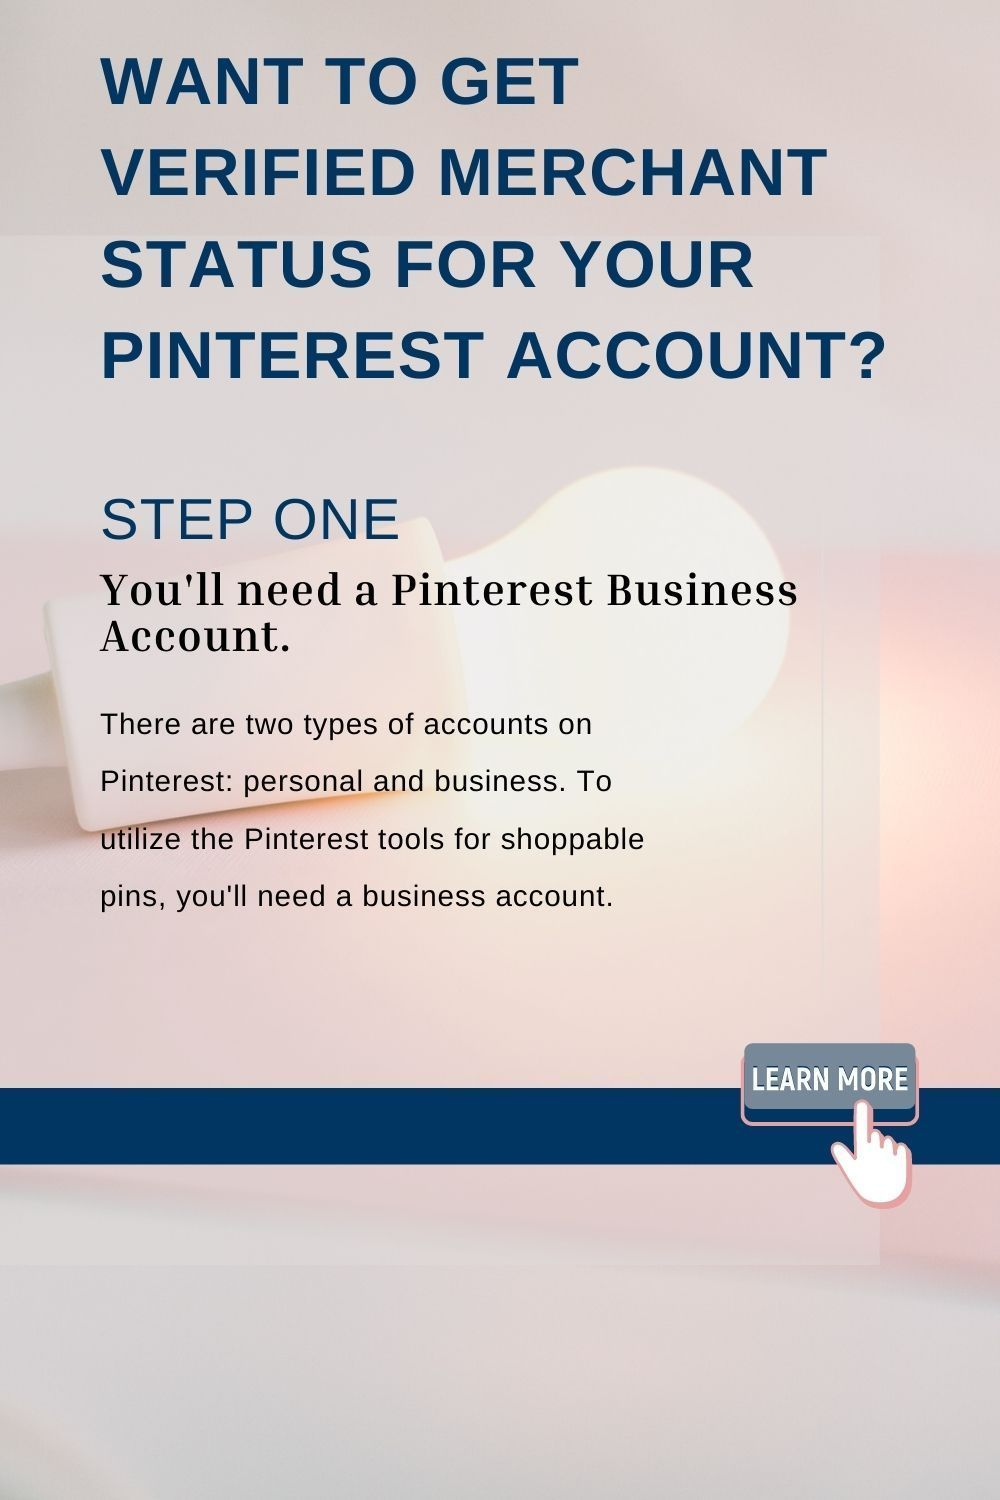 Verified Merchant Program How To Use Pinterest Marketing In 2021 Pinterest Business Account Pinterest For Business Merchants How to verify that addition is